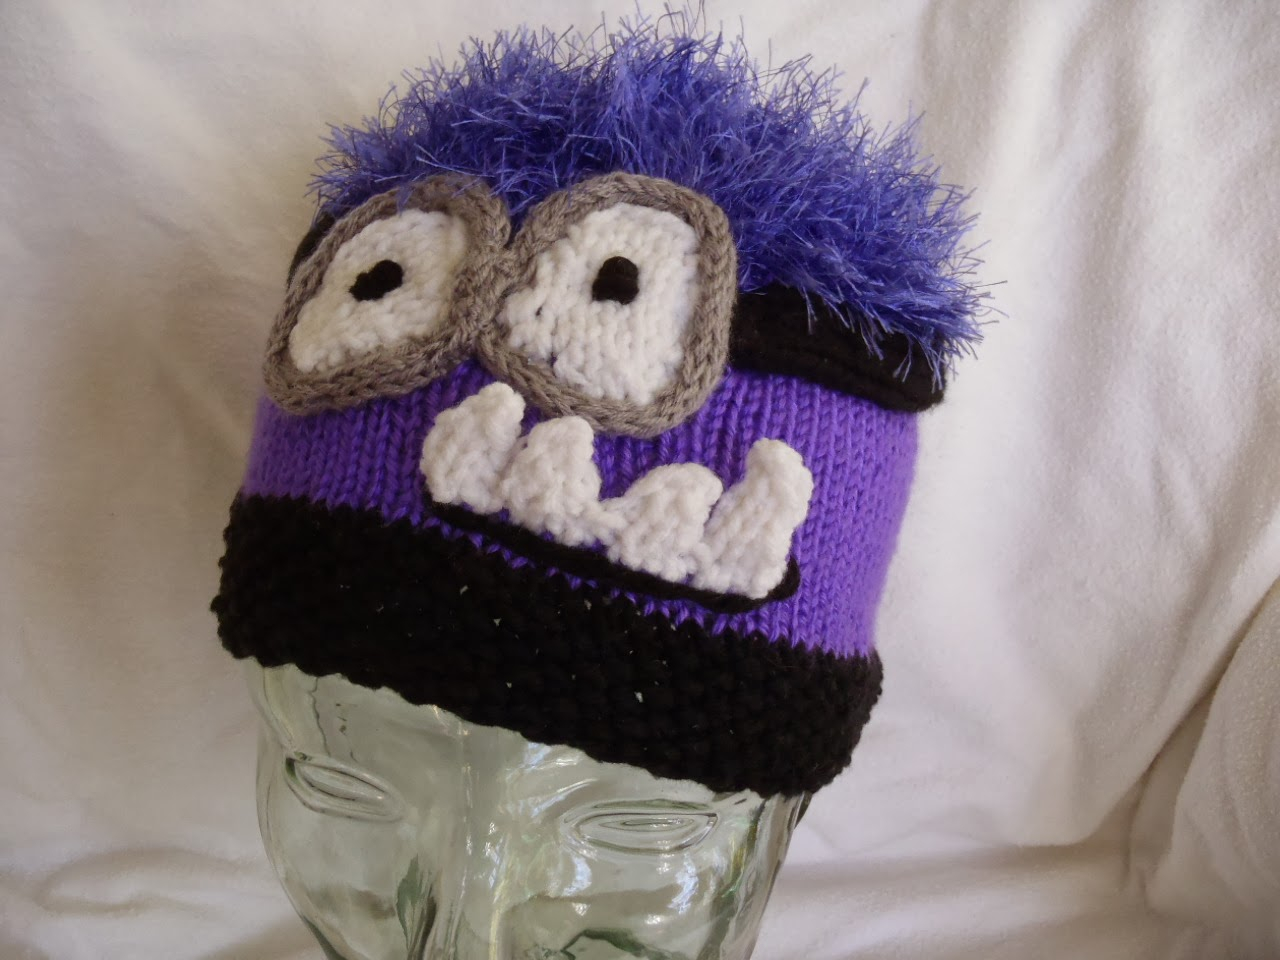 Knitting Patterns For Minion Hats Stanas Critters Etc Knitting Patterns For Minion Hat And Evil